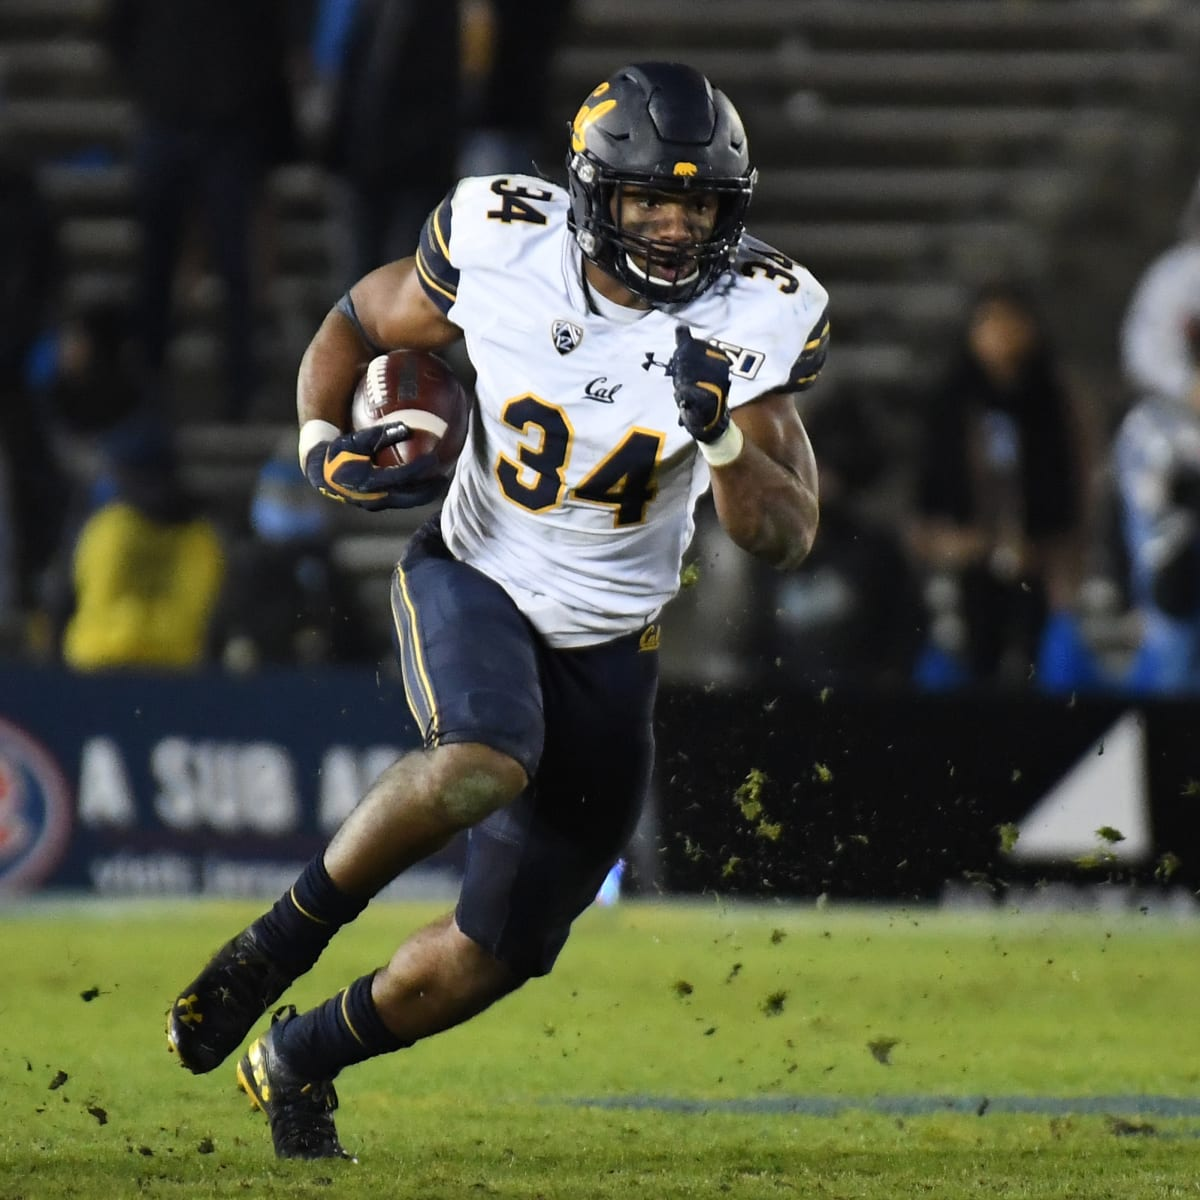 Cal S 2020 Schedule Ranks Among The Toughest In The Nation Sports Illustrated Cal Bears News Analysis And More